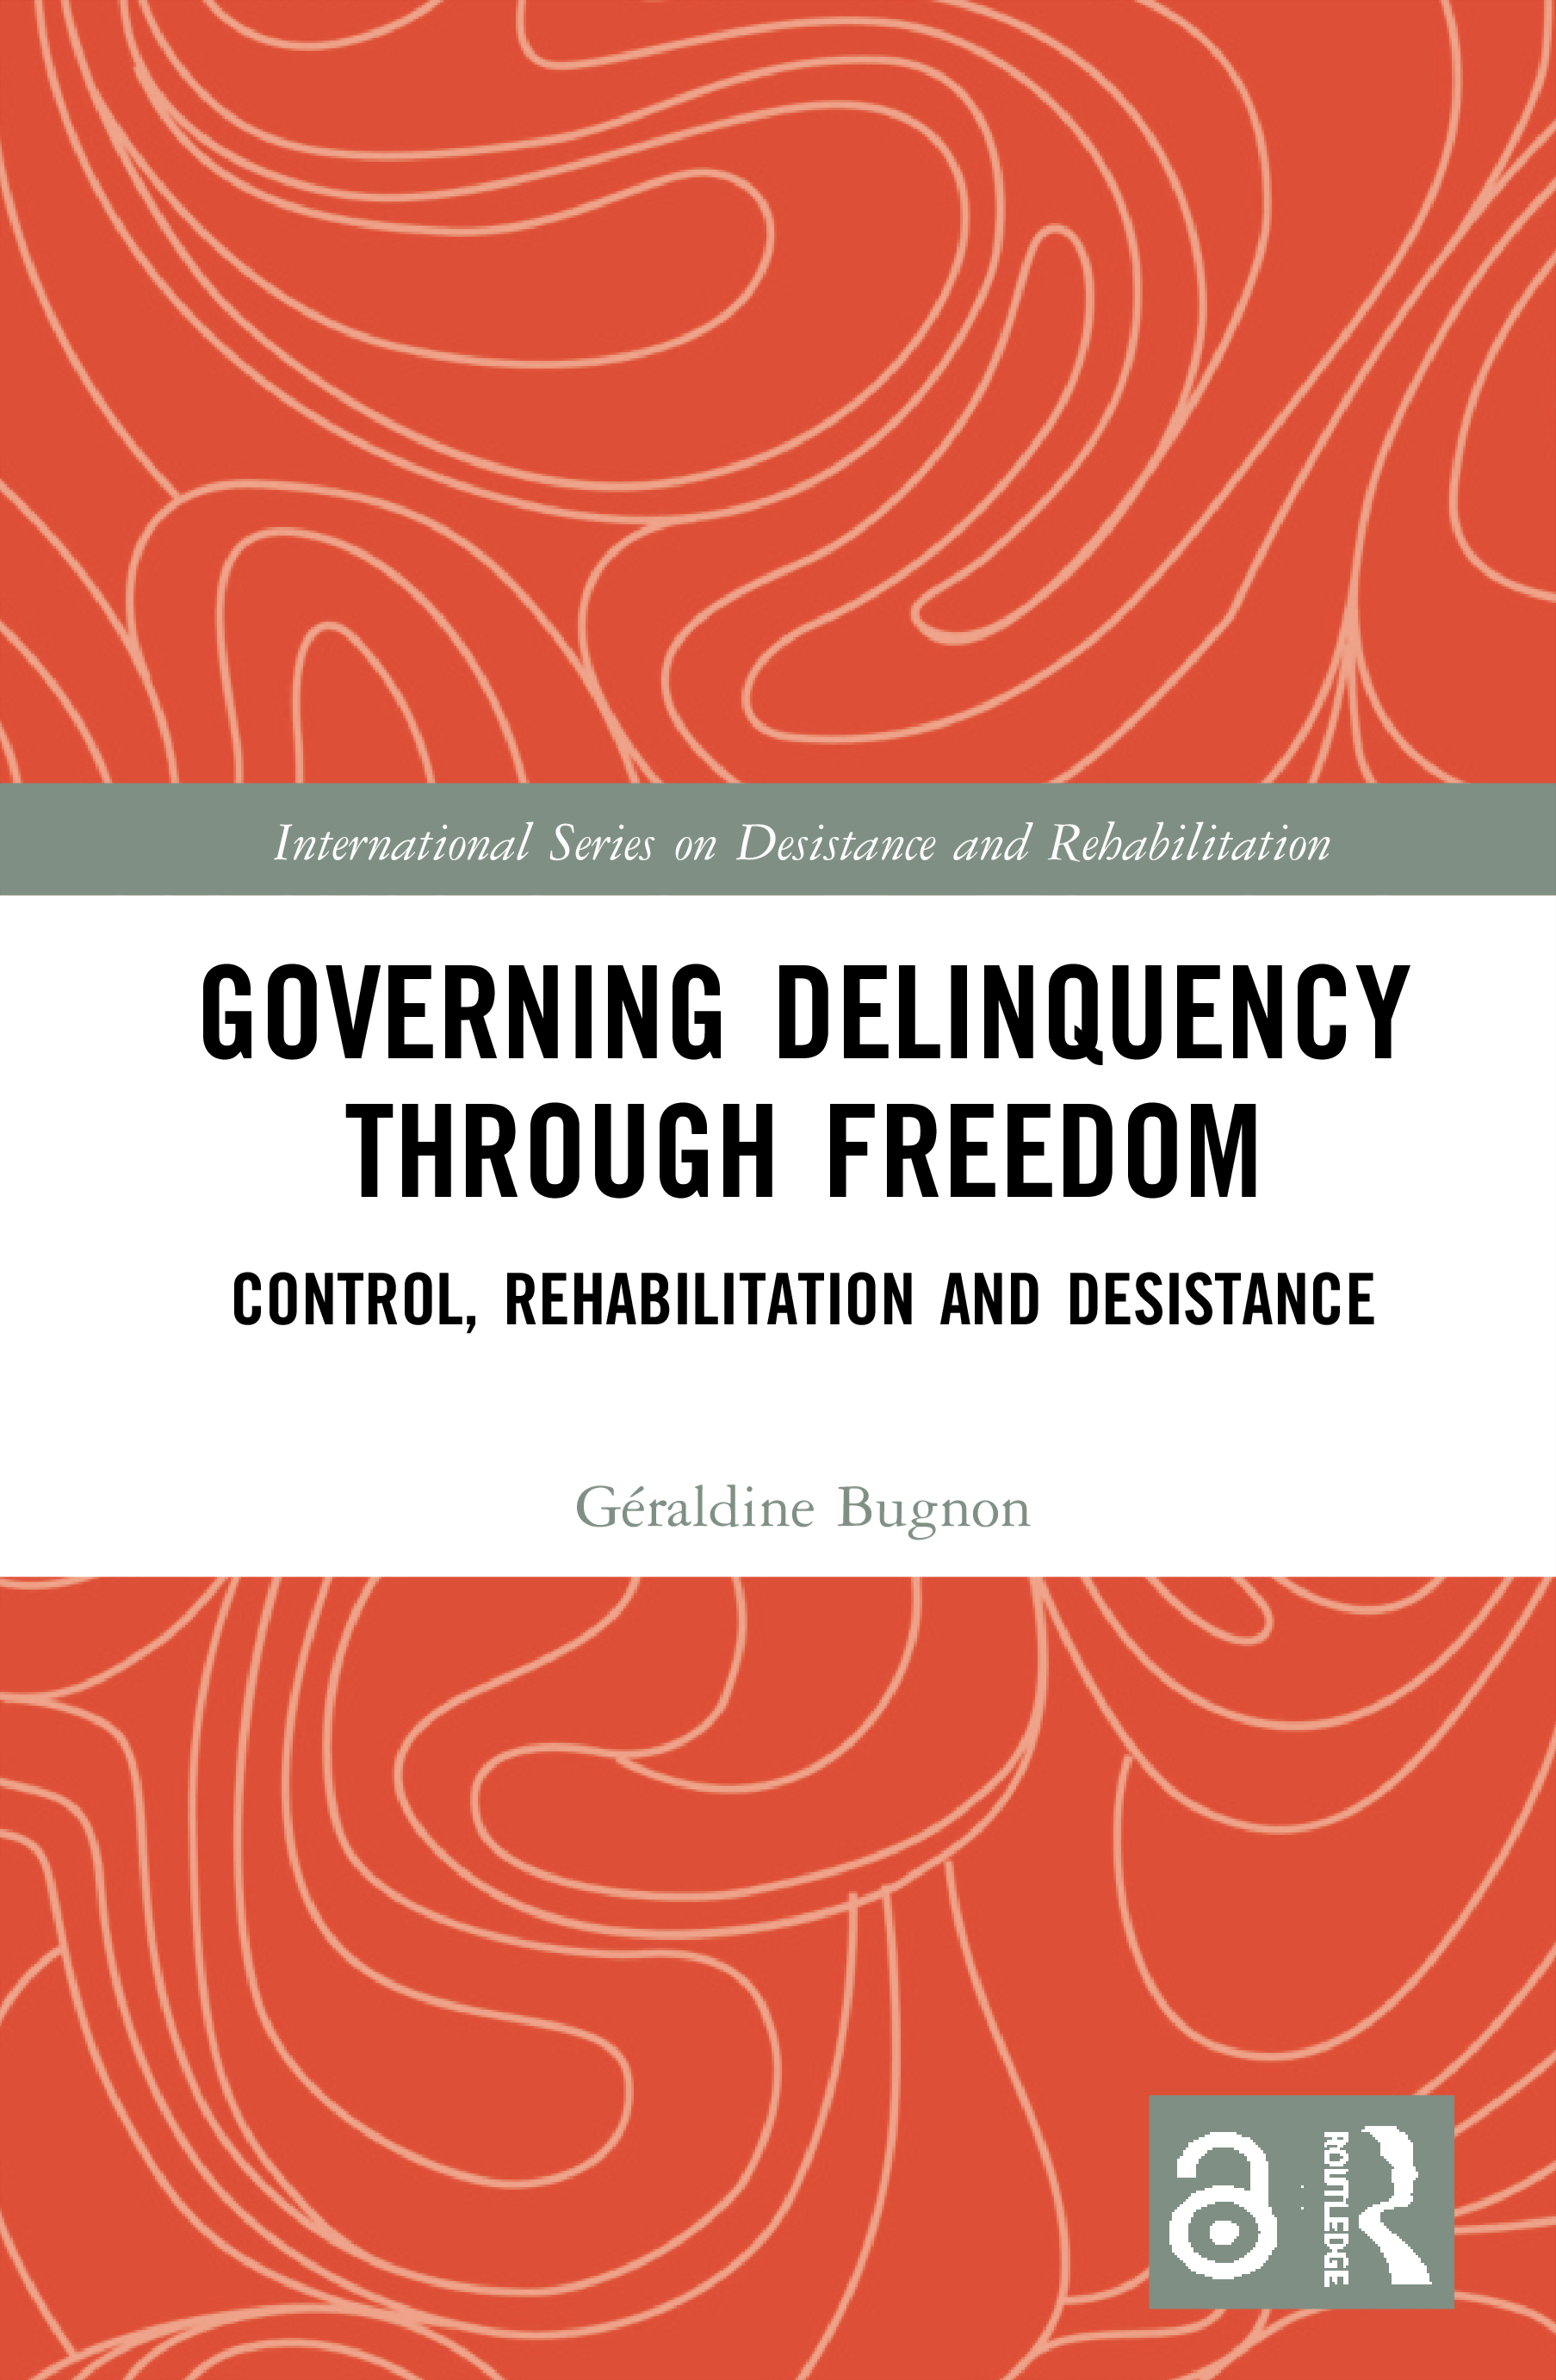 Governing Delinquency Through Freedom: Control, Rehabilitation and Desistance book cover